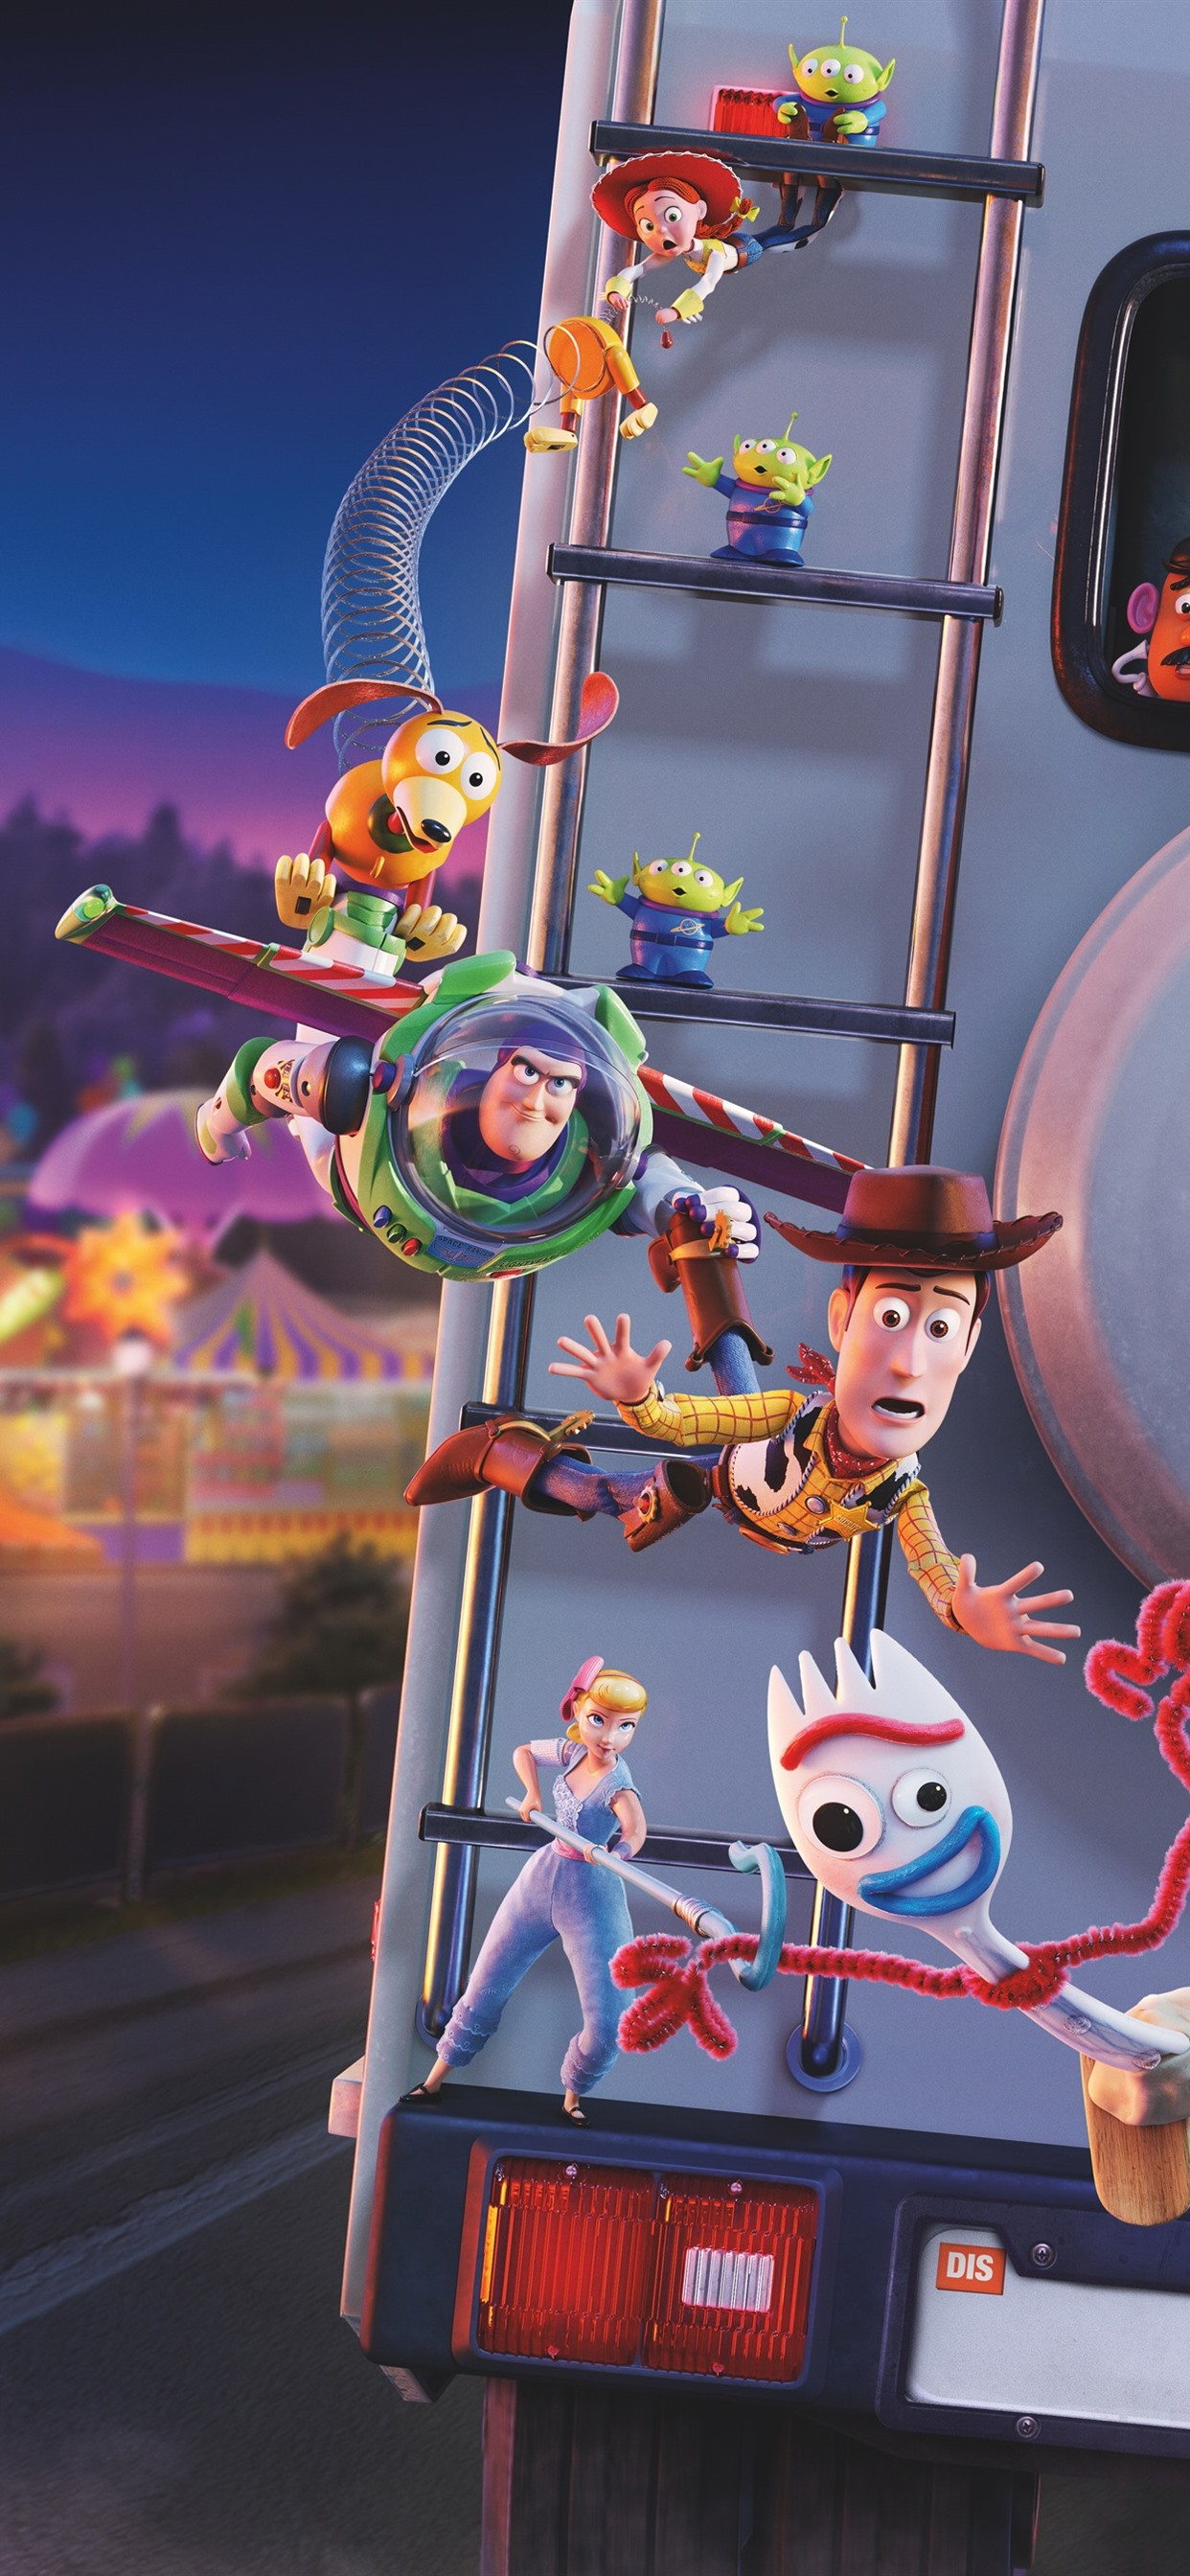 Toy Story 4 Disney Movie 2019 1242x2688 Iphone 11 Pro Xs Max